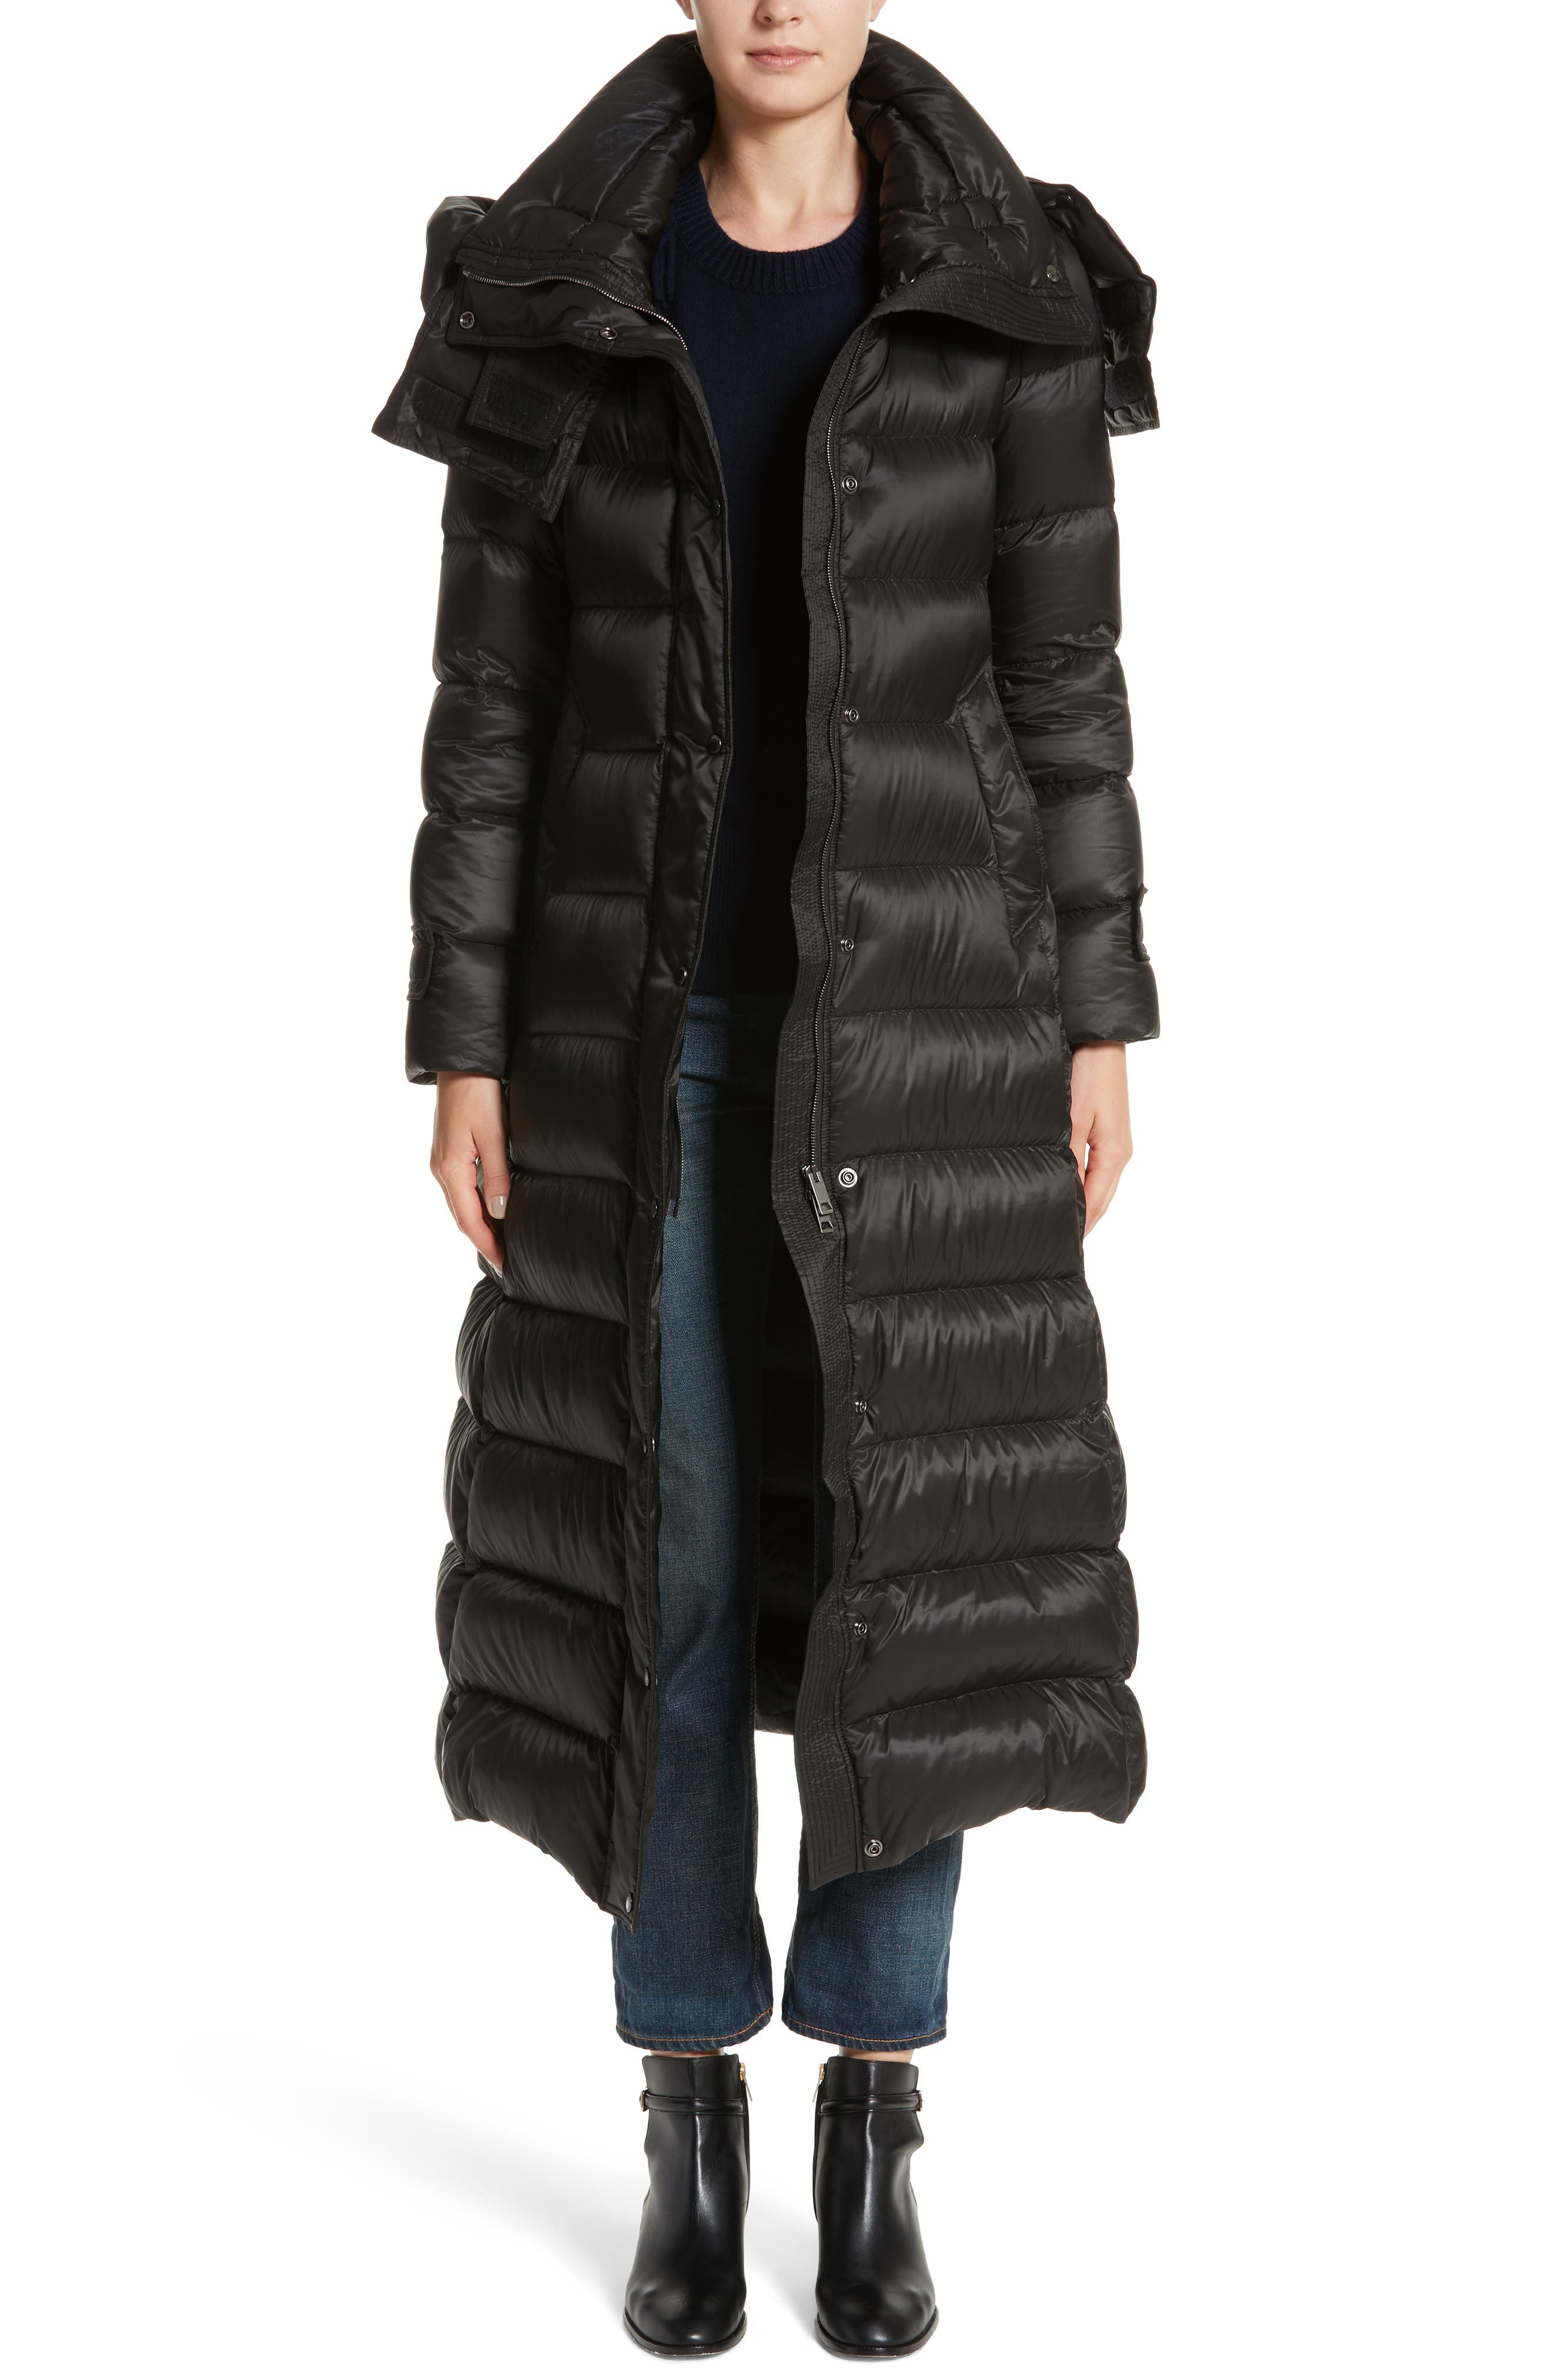 Burberry Kanefield Puffer Coat with Removable Hood